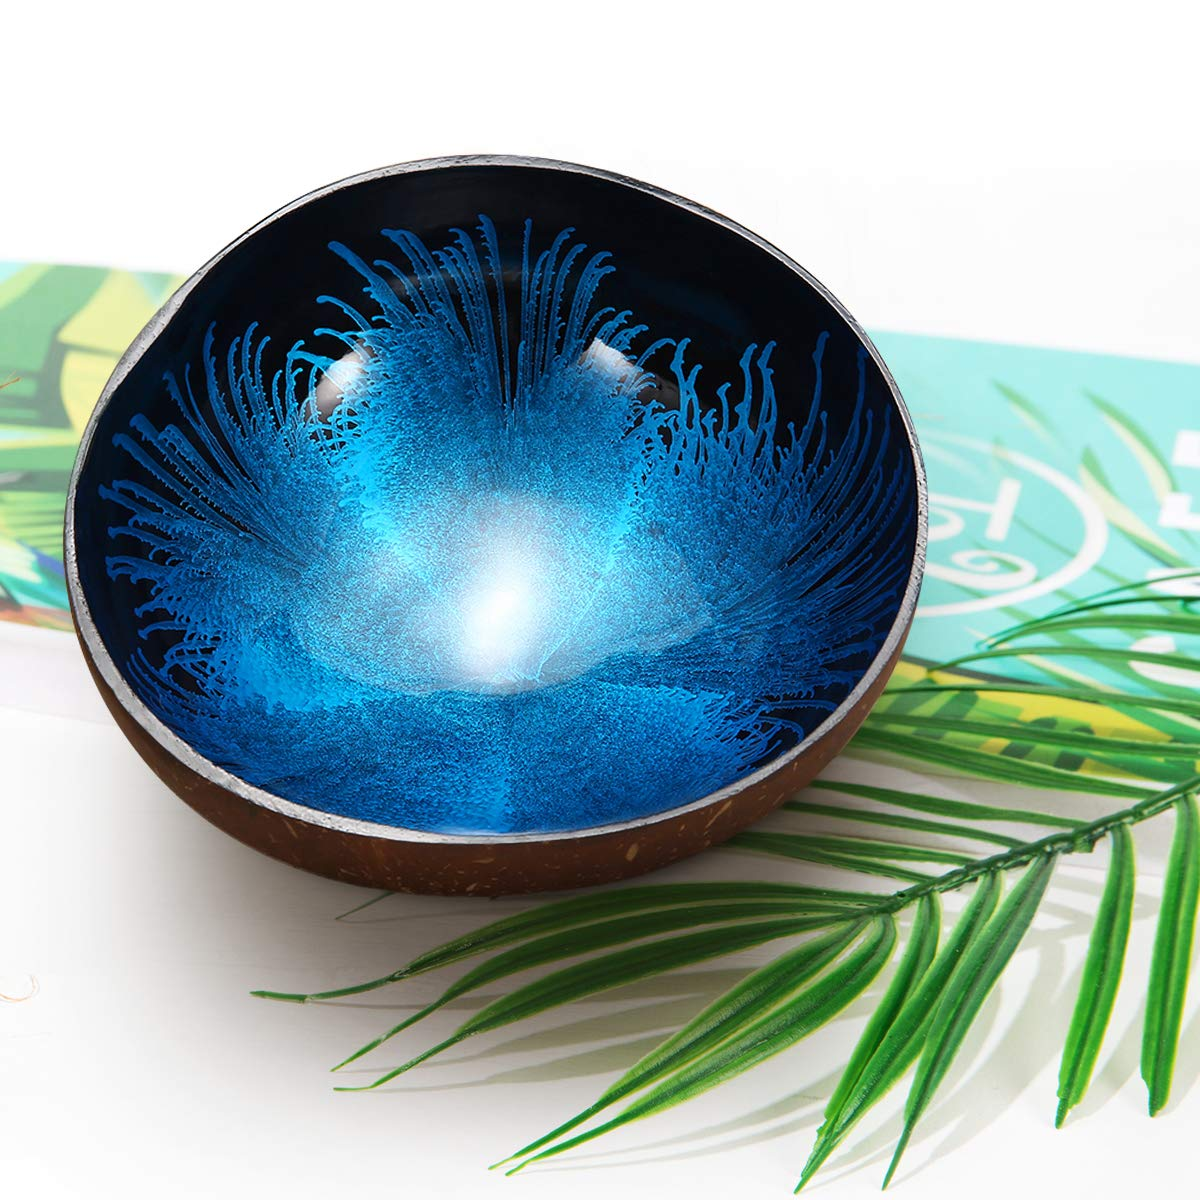 ESSORT Coconut Bowl, Natural Coconut Decorative Shell Handmade Unique Design for Party Home Kitchen Hotel Decoration Collection Wedding Birthday Gift Blue